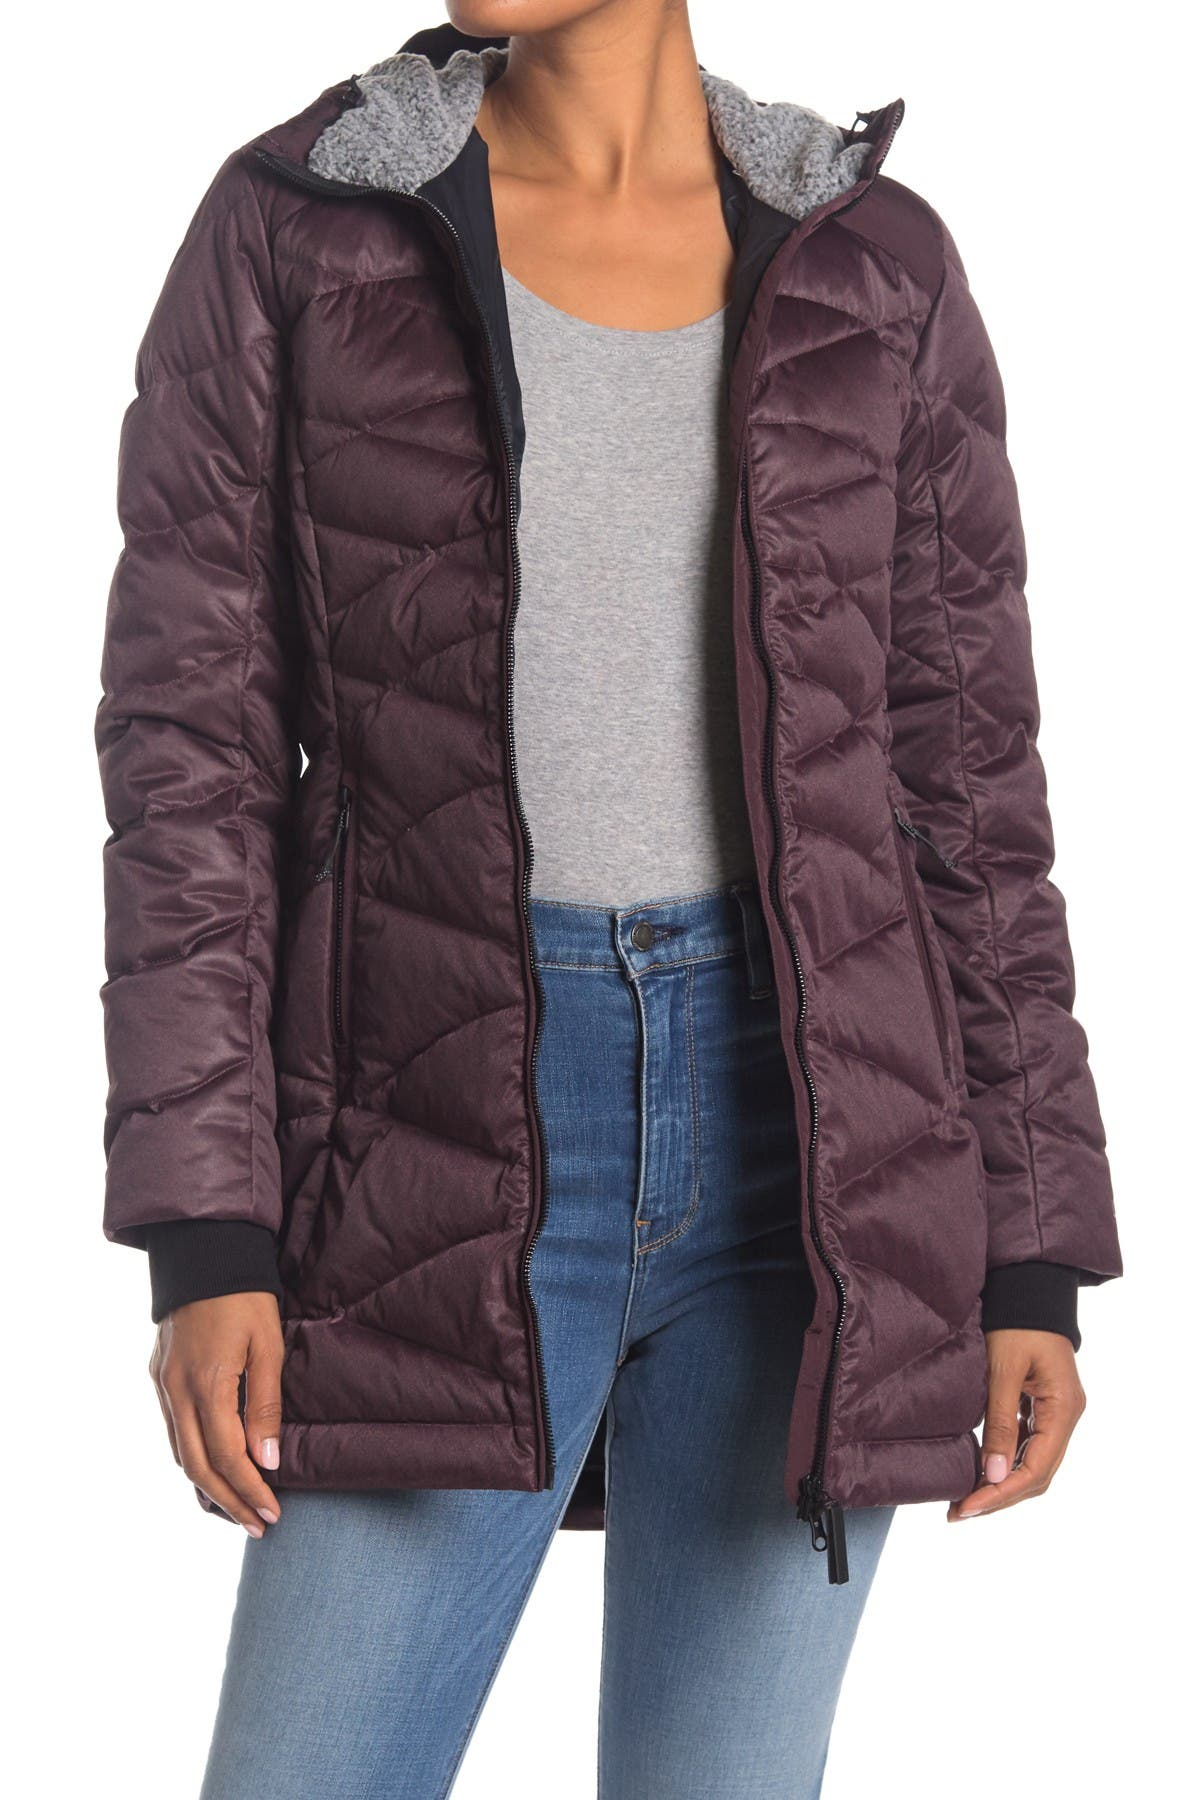 Image of Lole Faith Faux Fur Lined Hood Quilted Down Jacket